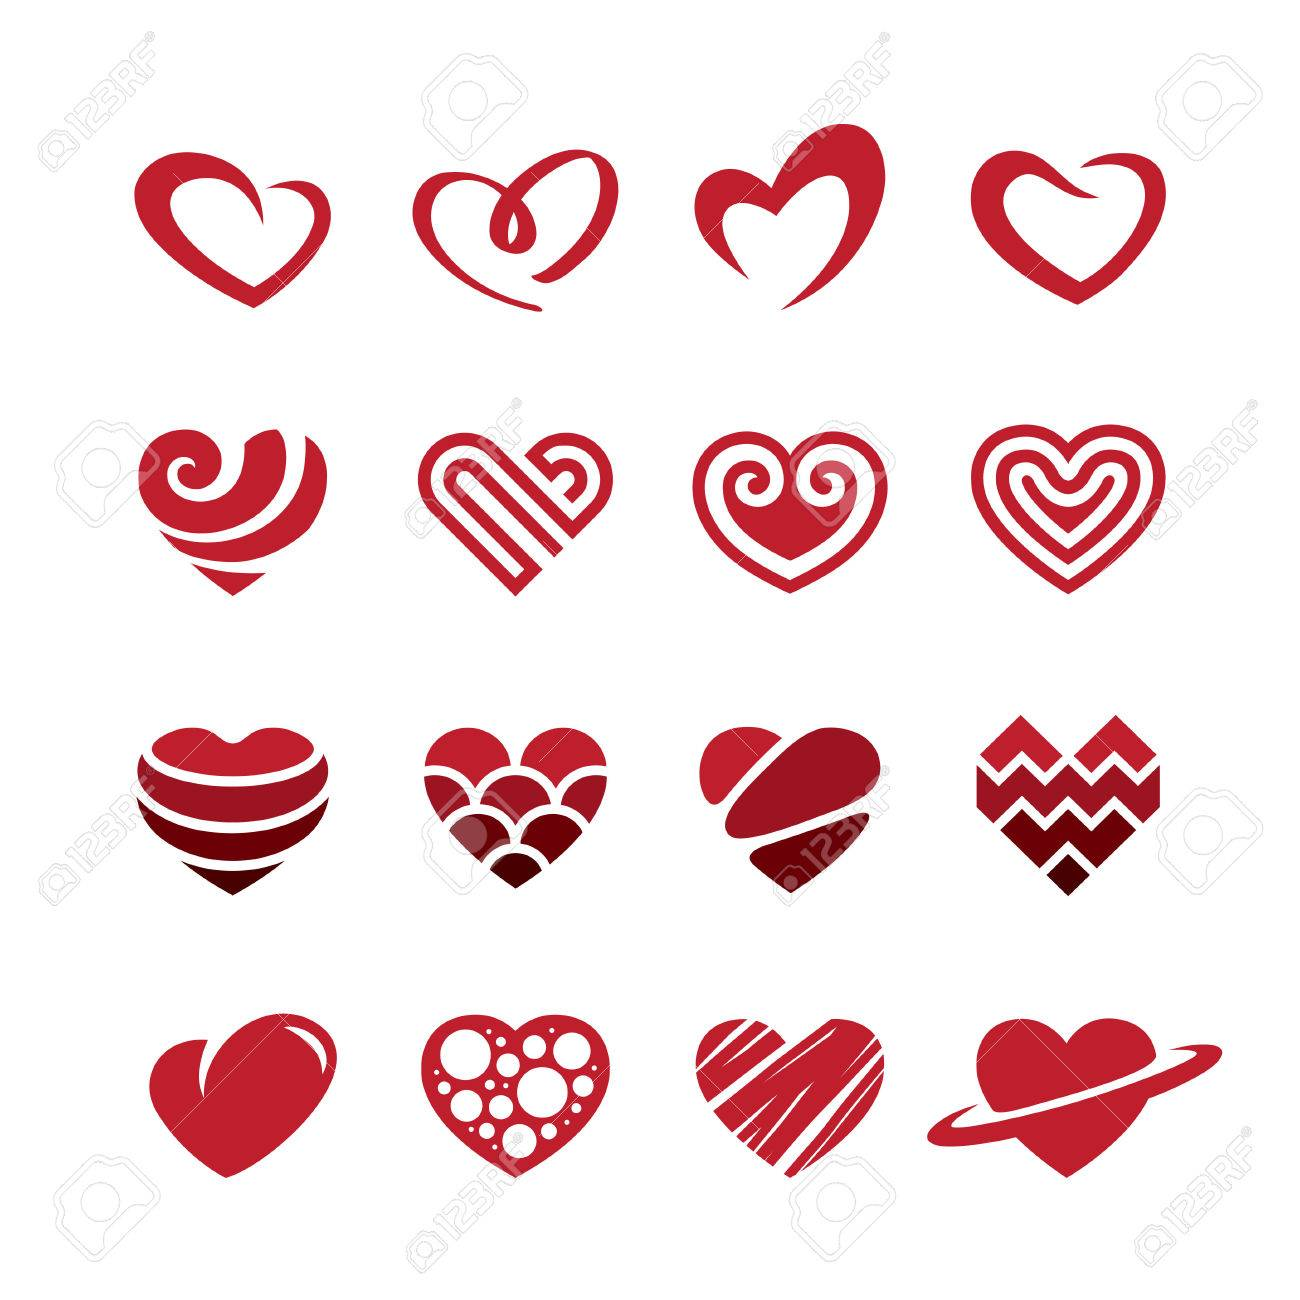 Set Of Red Heart Icons Logos Signs And Symbols For Love Romantic